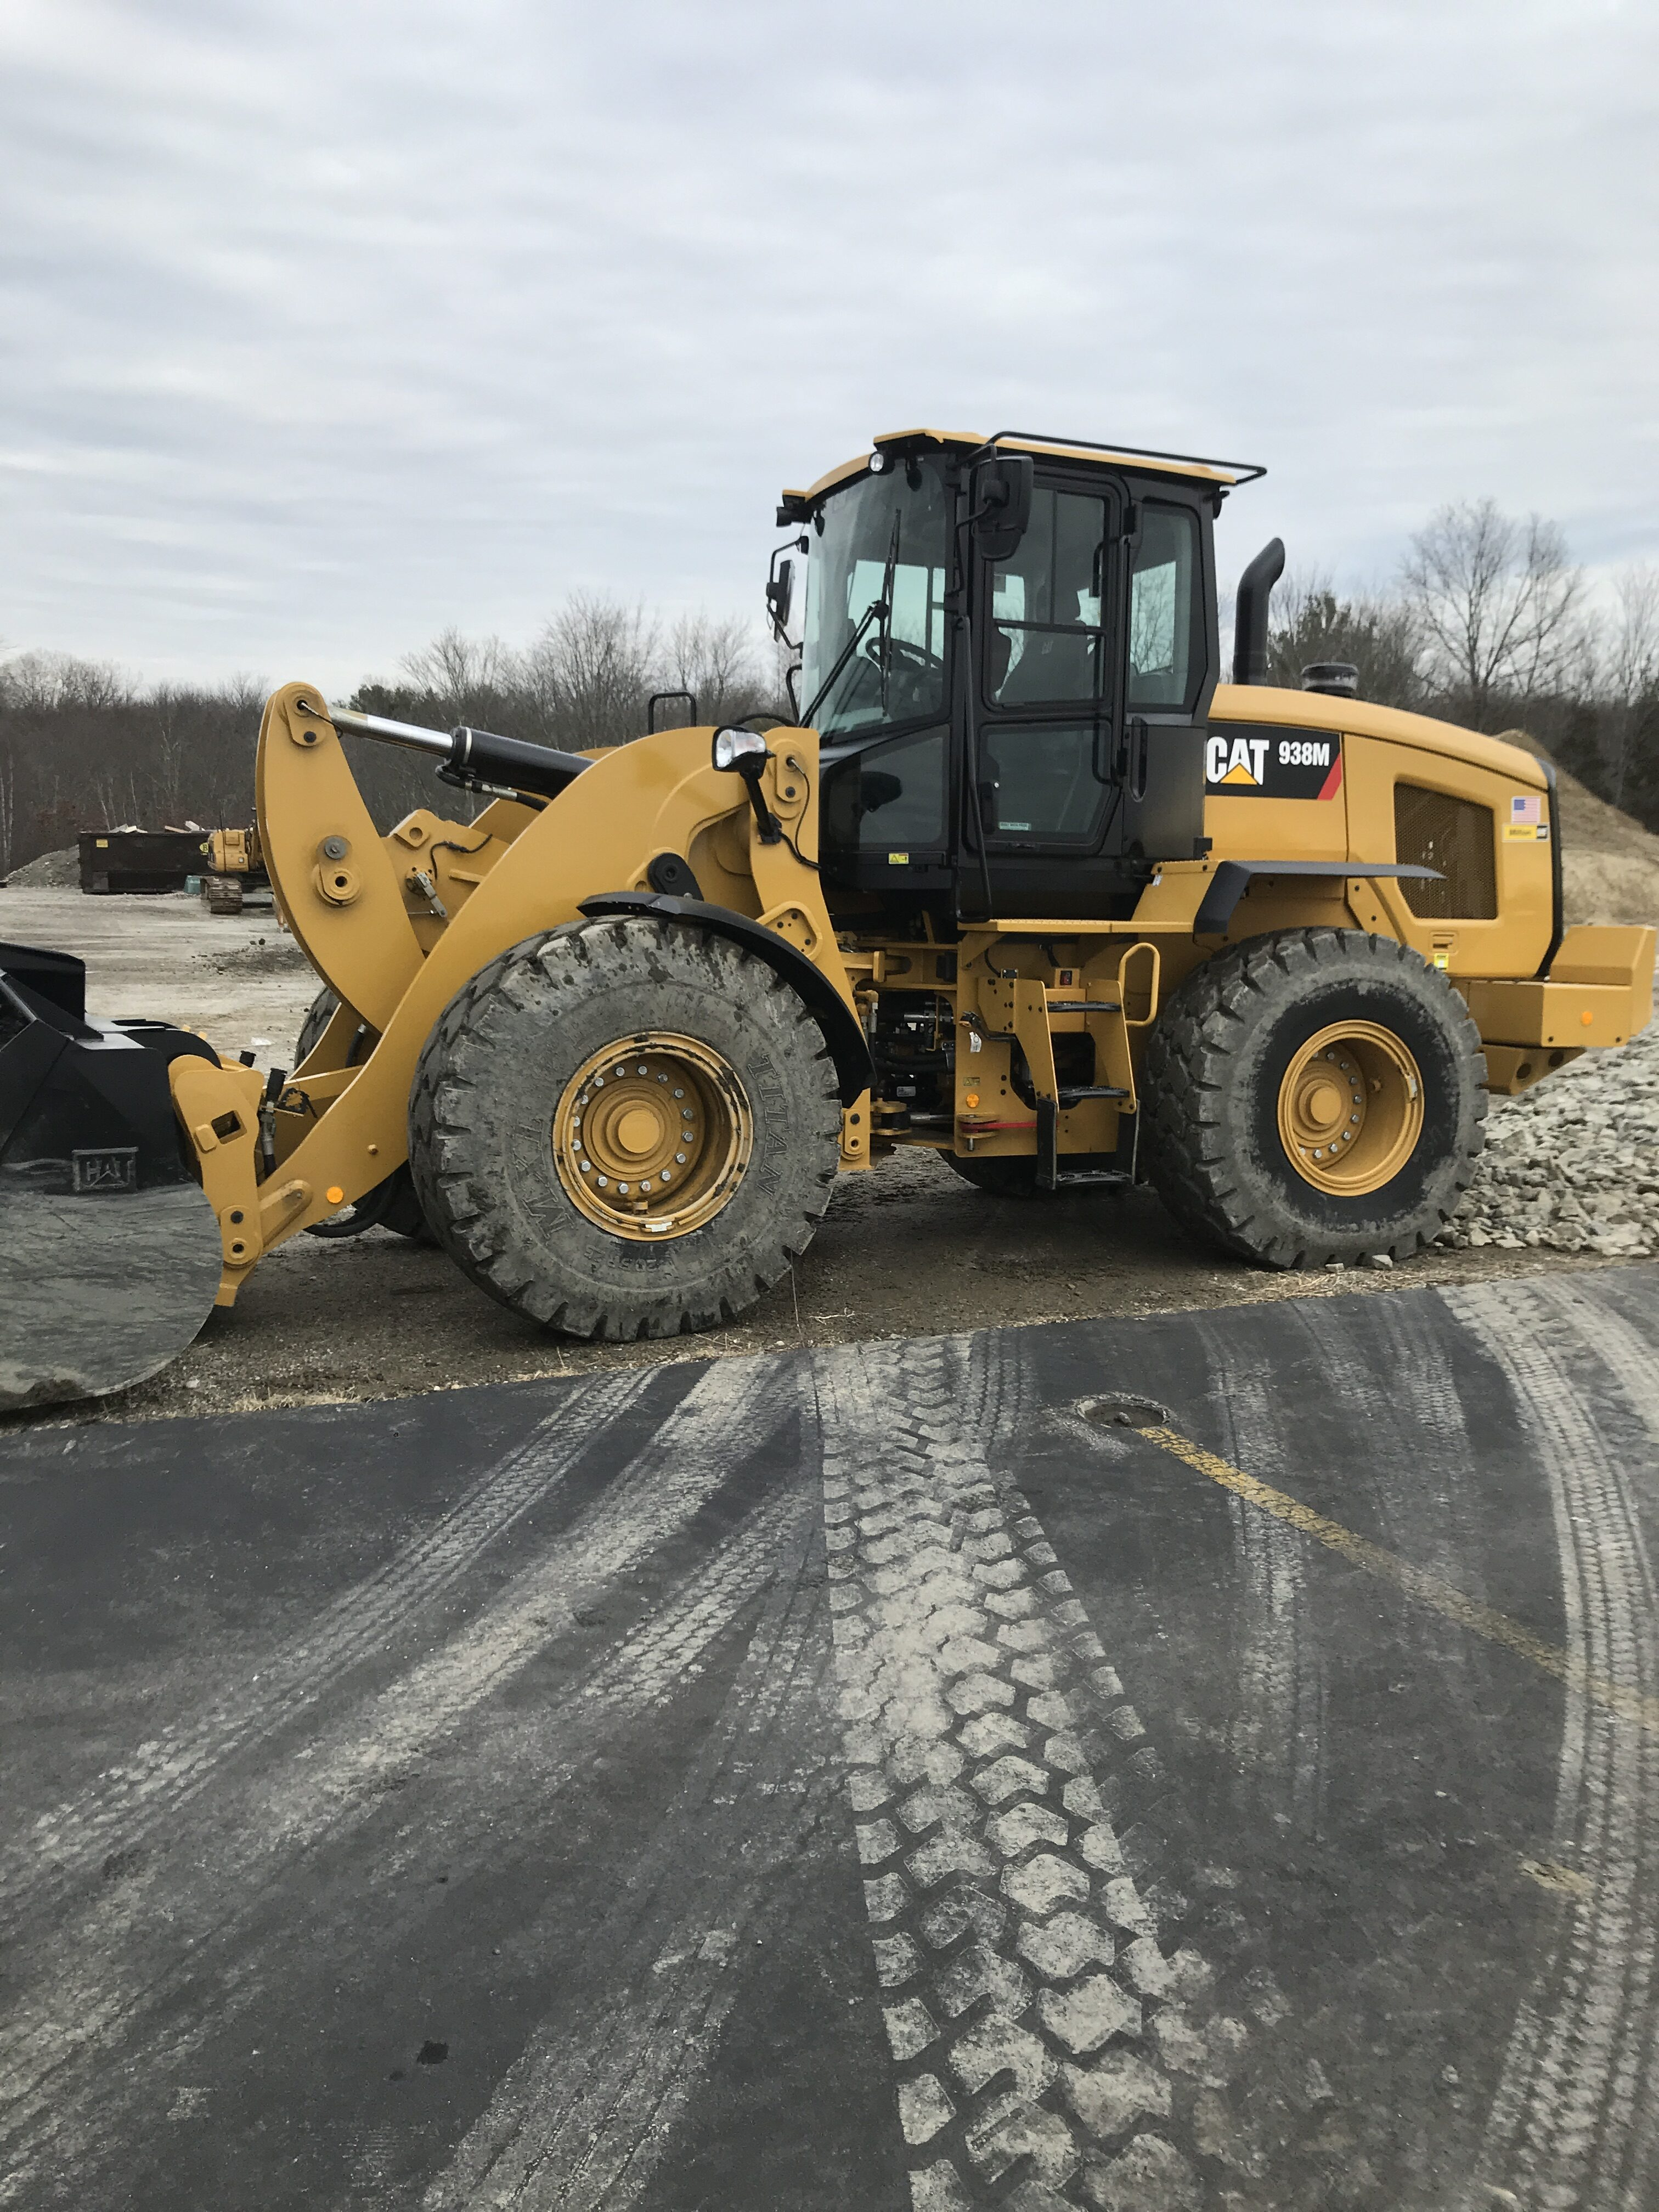 Yellow CAT front loader